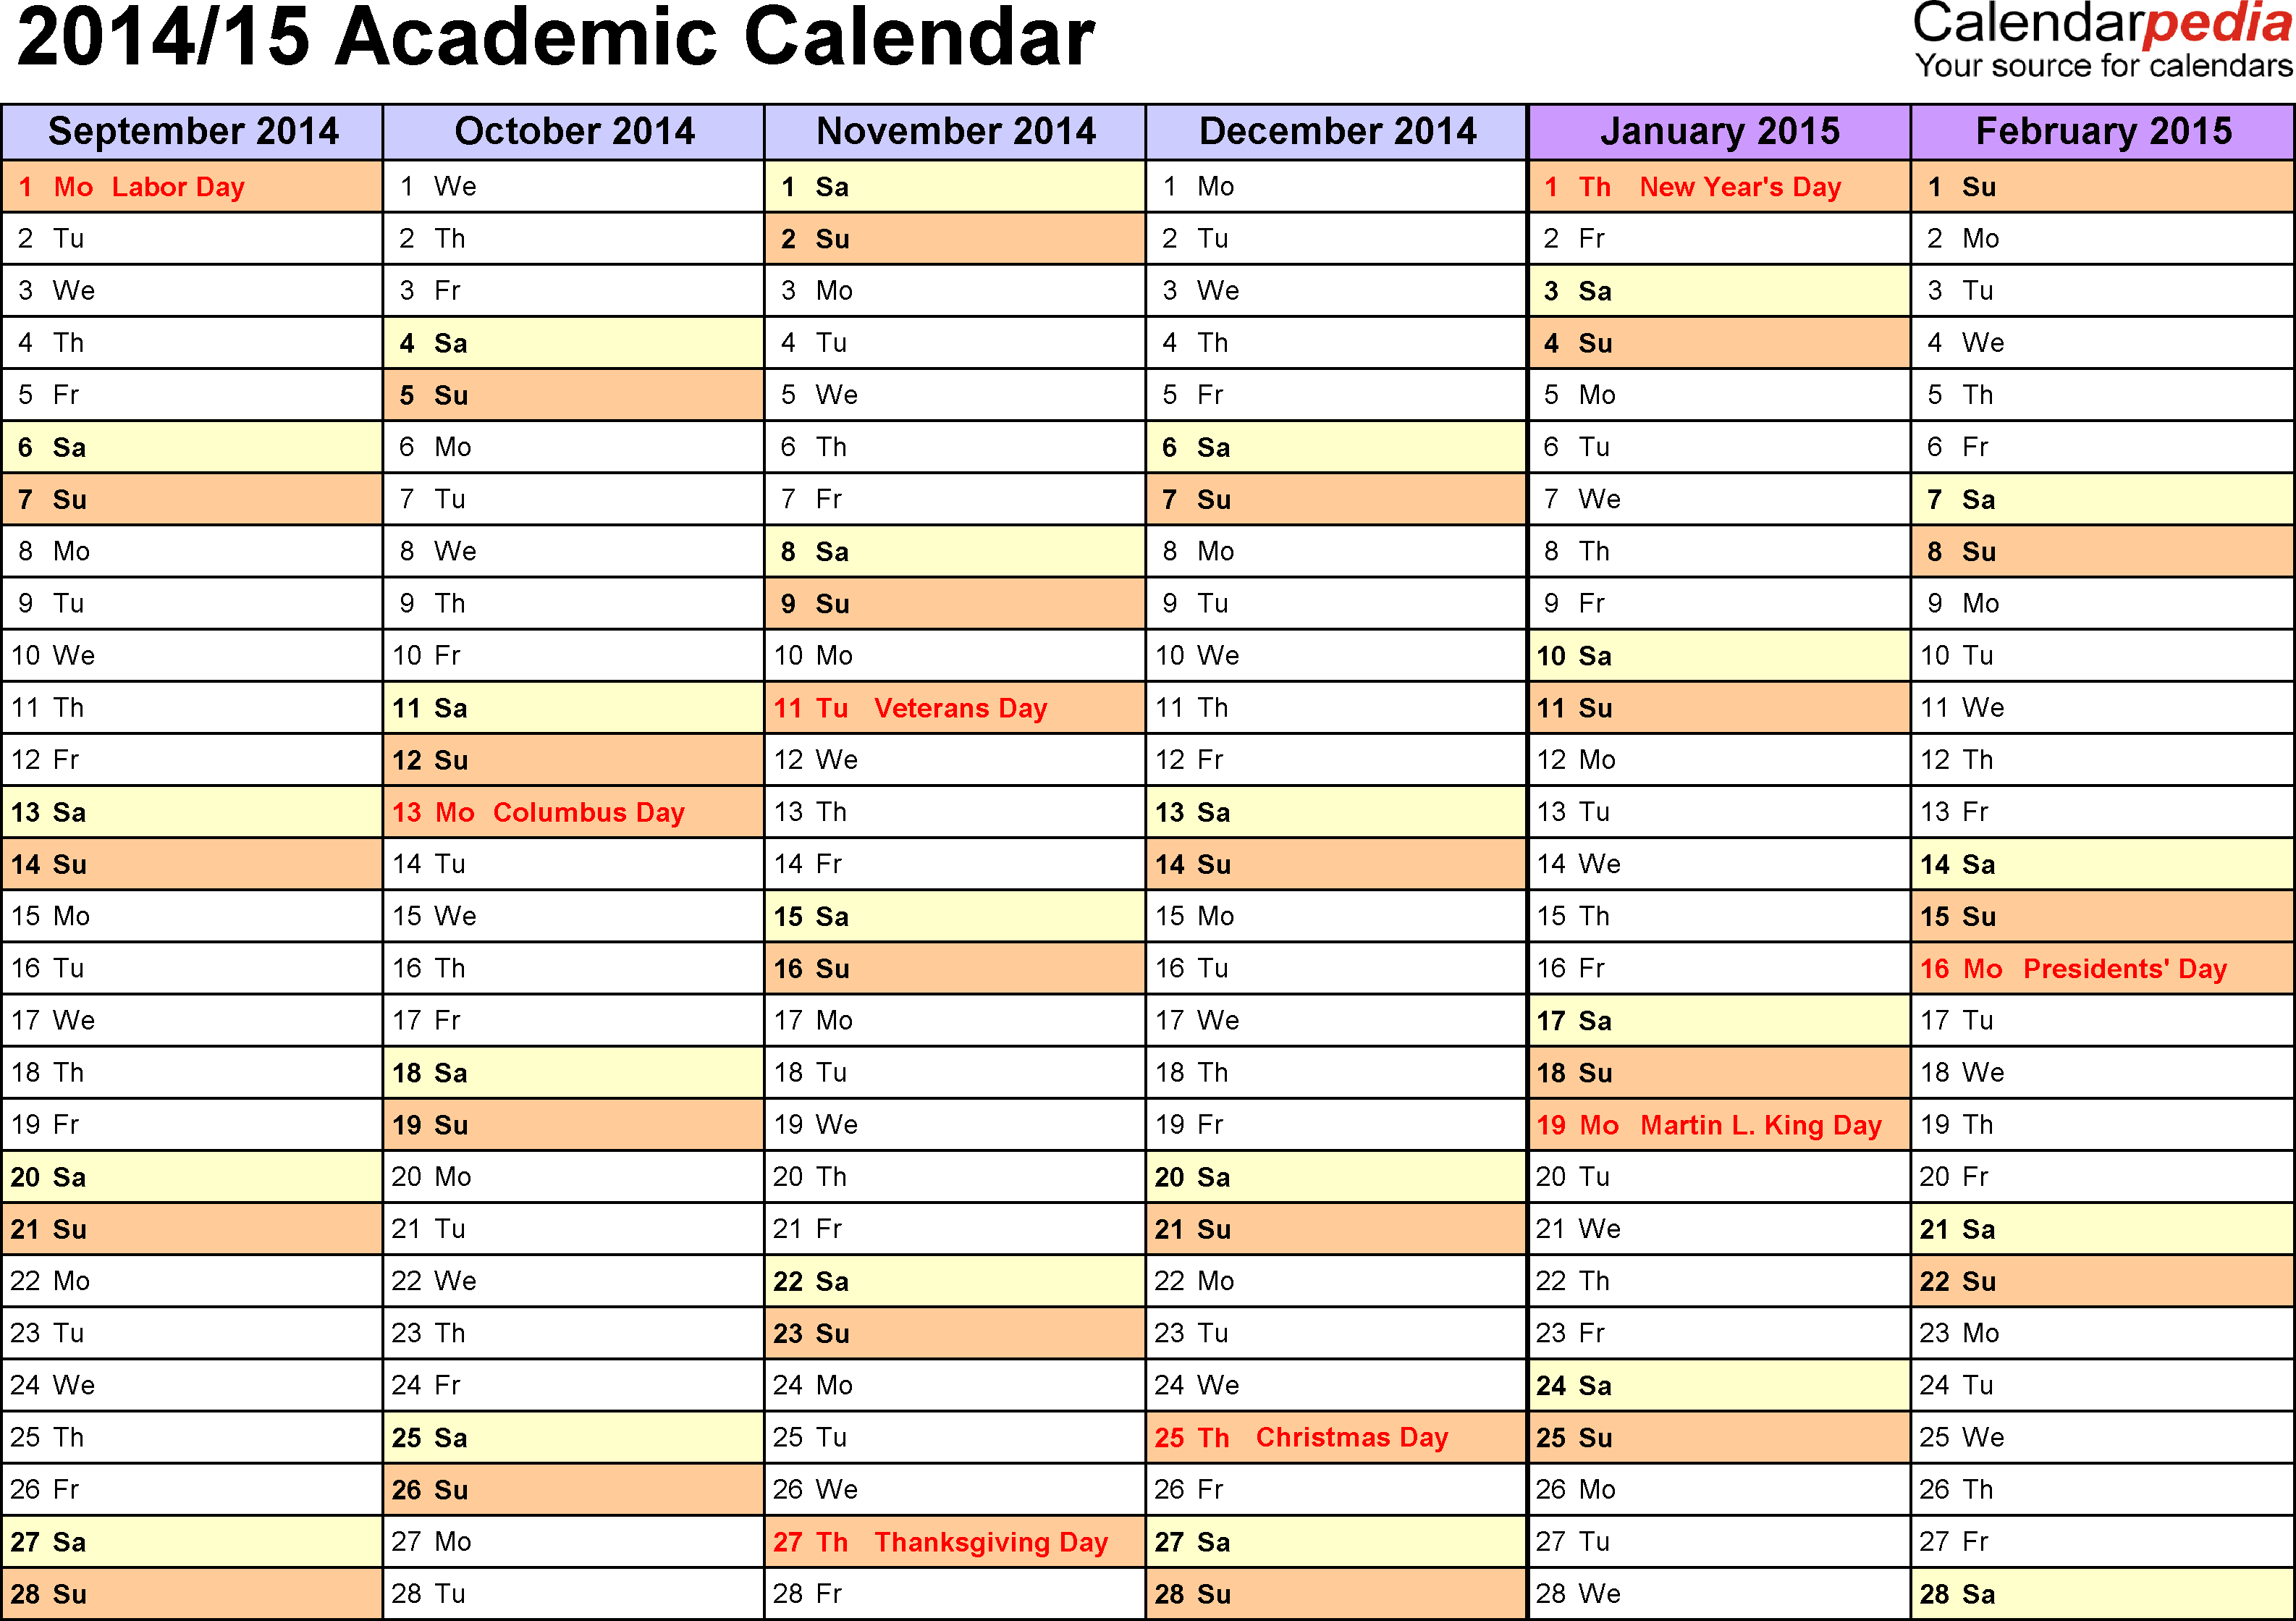 Template 2: Academic calendar 2014/15 for Word, landscape orientation, months horizontally, 2 pages